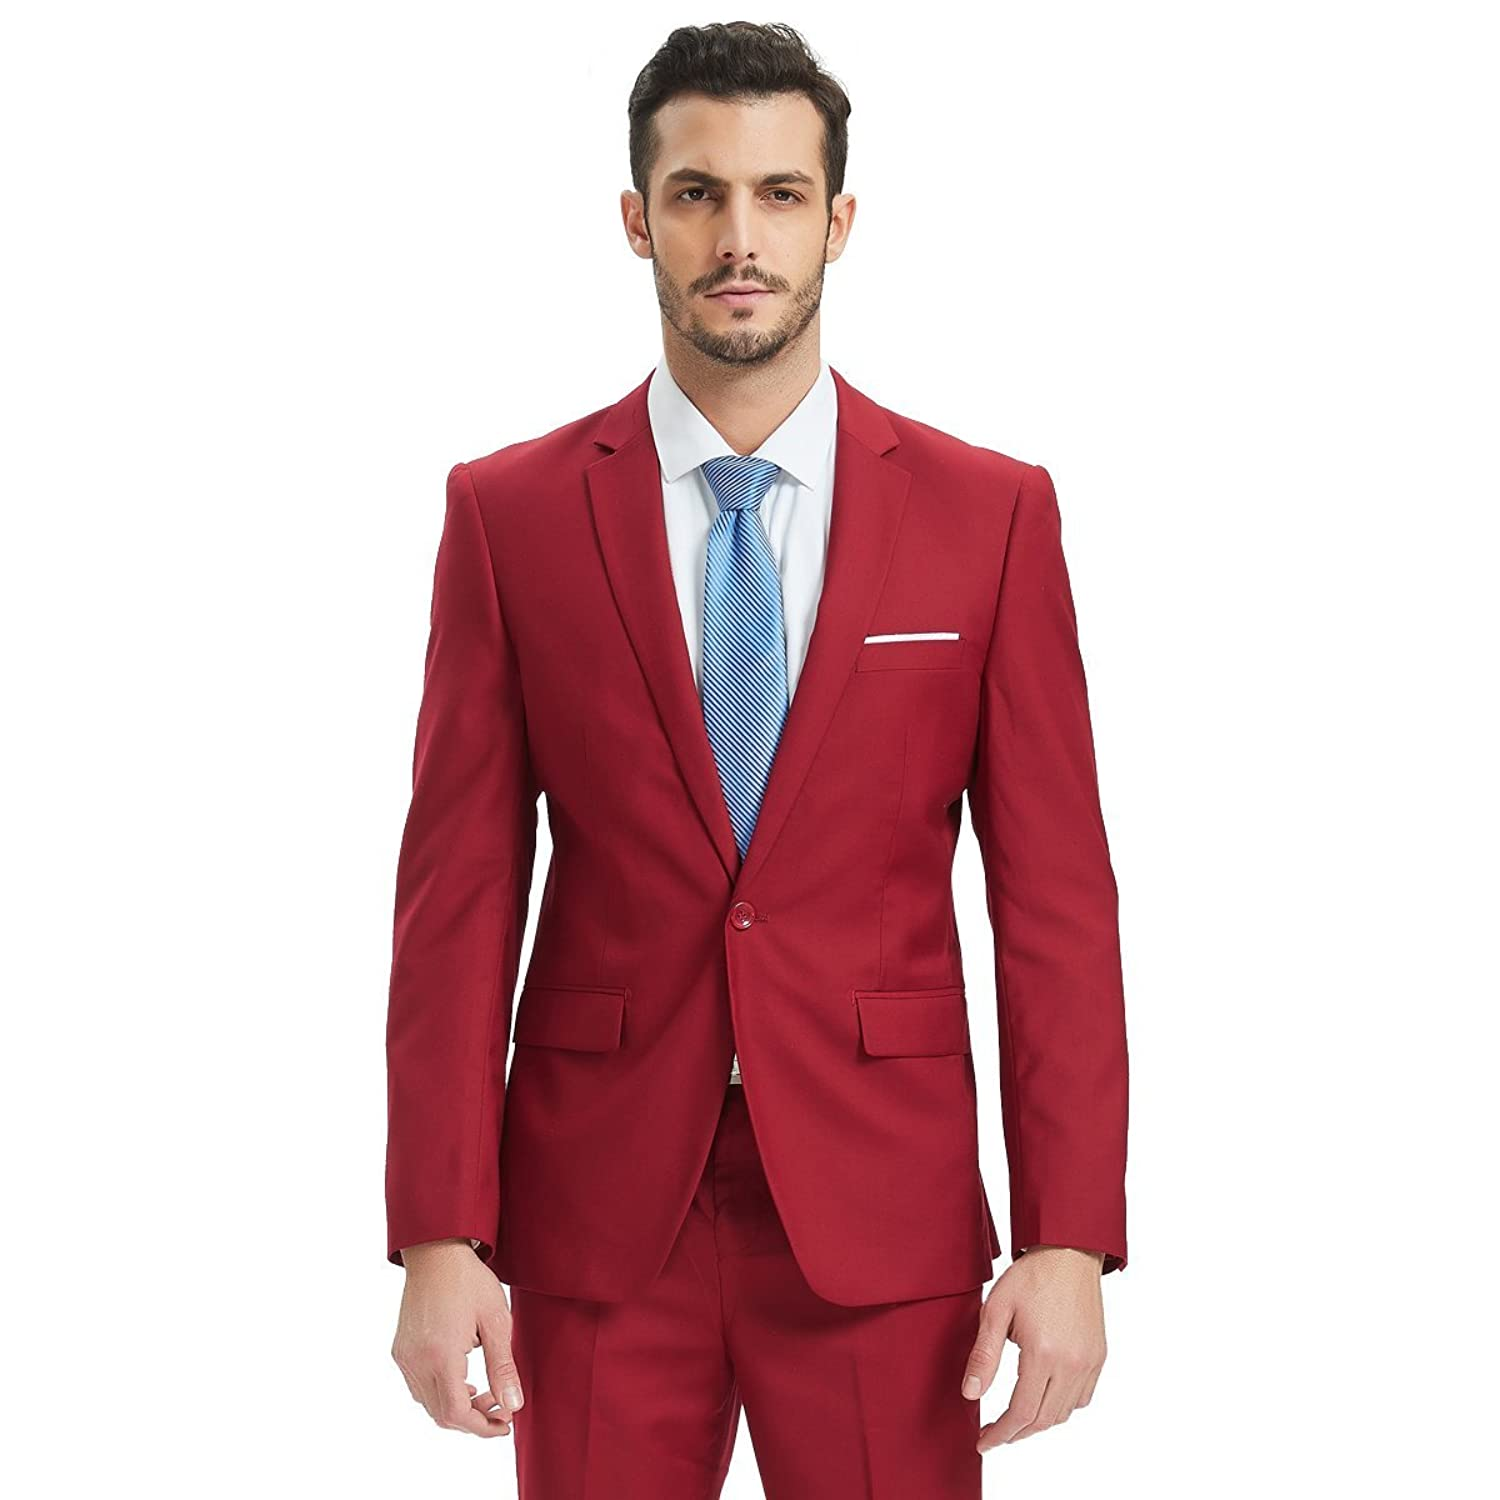 Workmanship jacket+pants+bow Tie In High Quality Mens Suits Groom Tuxedos Groomsmen Wedding Party Dinner Best Man Suits W:38 Exquisite